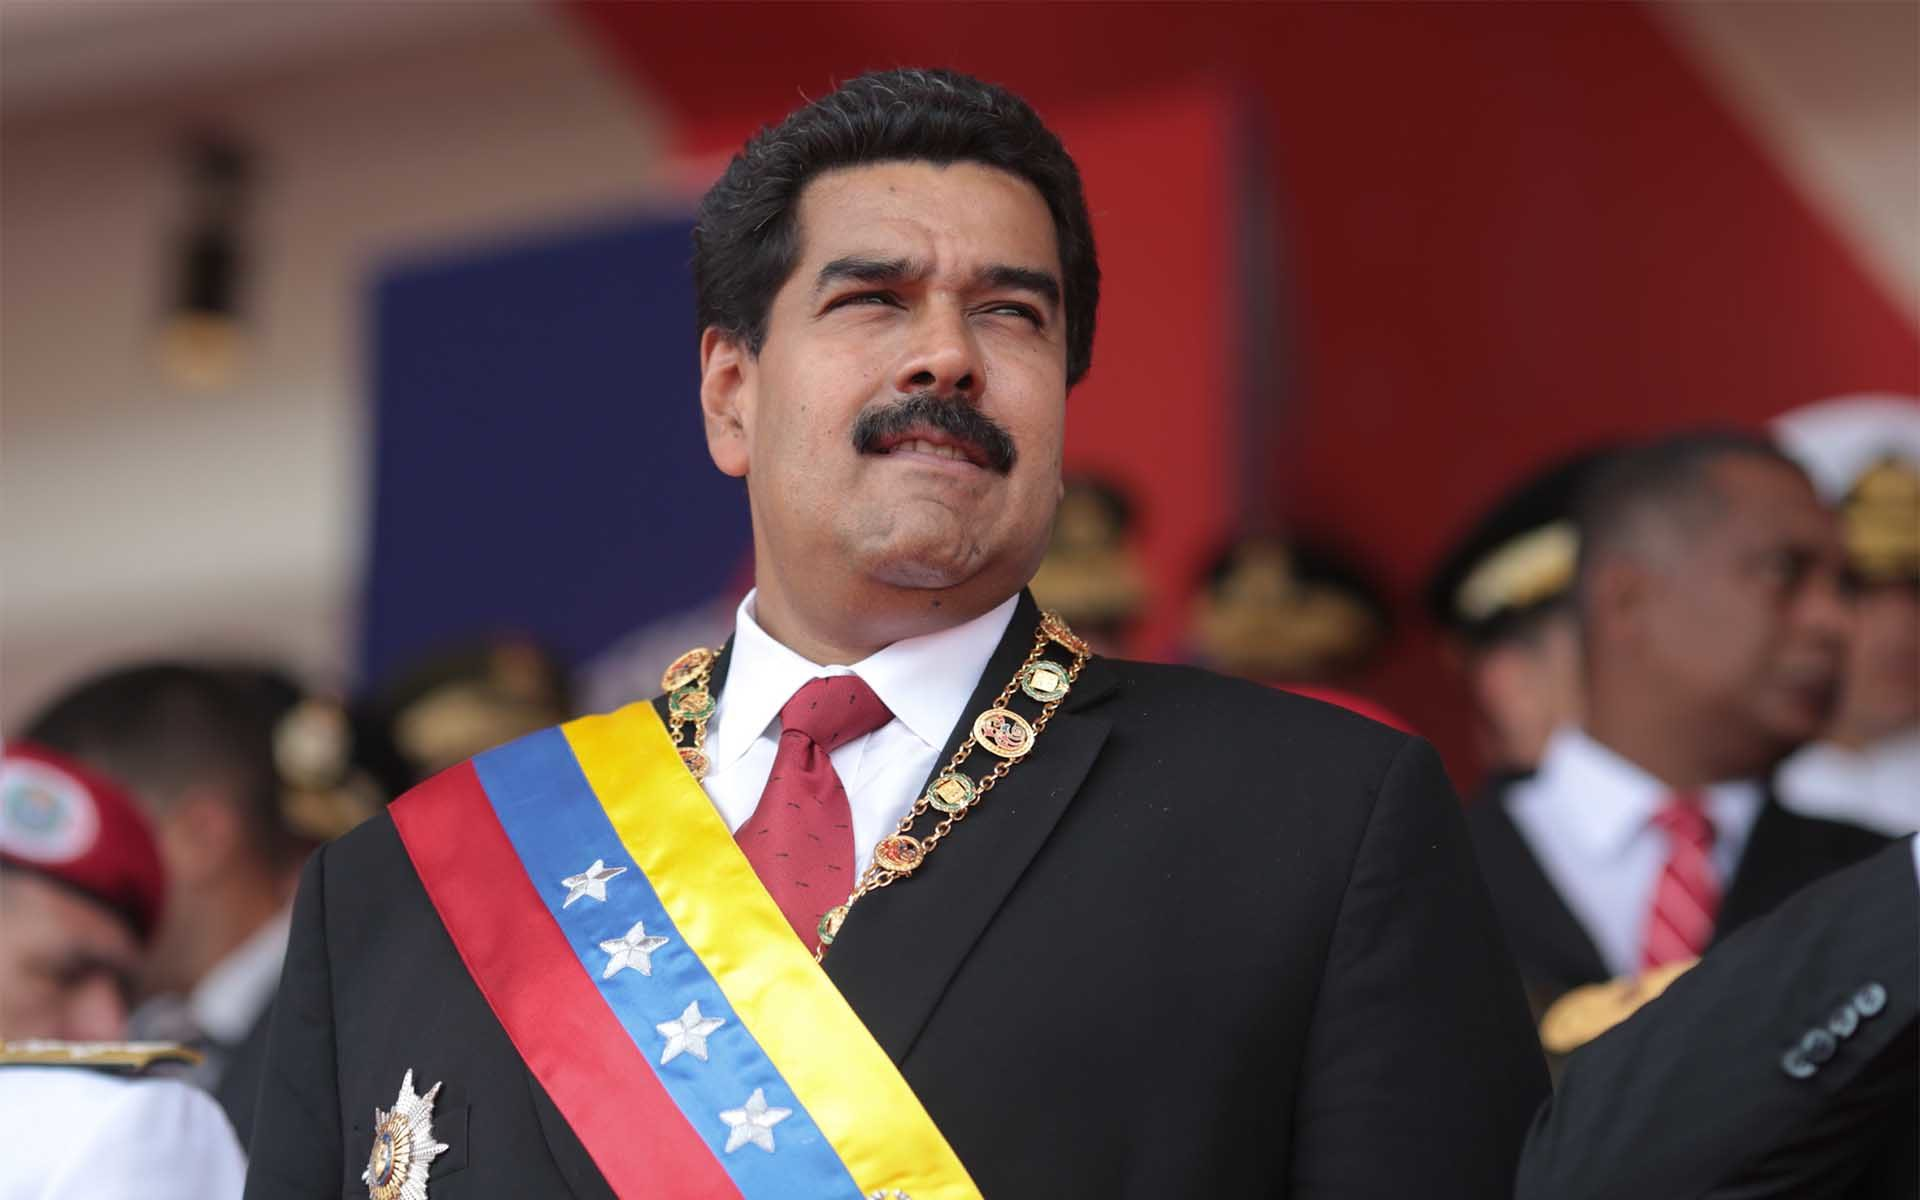 Maduro departs to meet Putin in Moscow